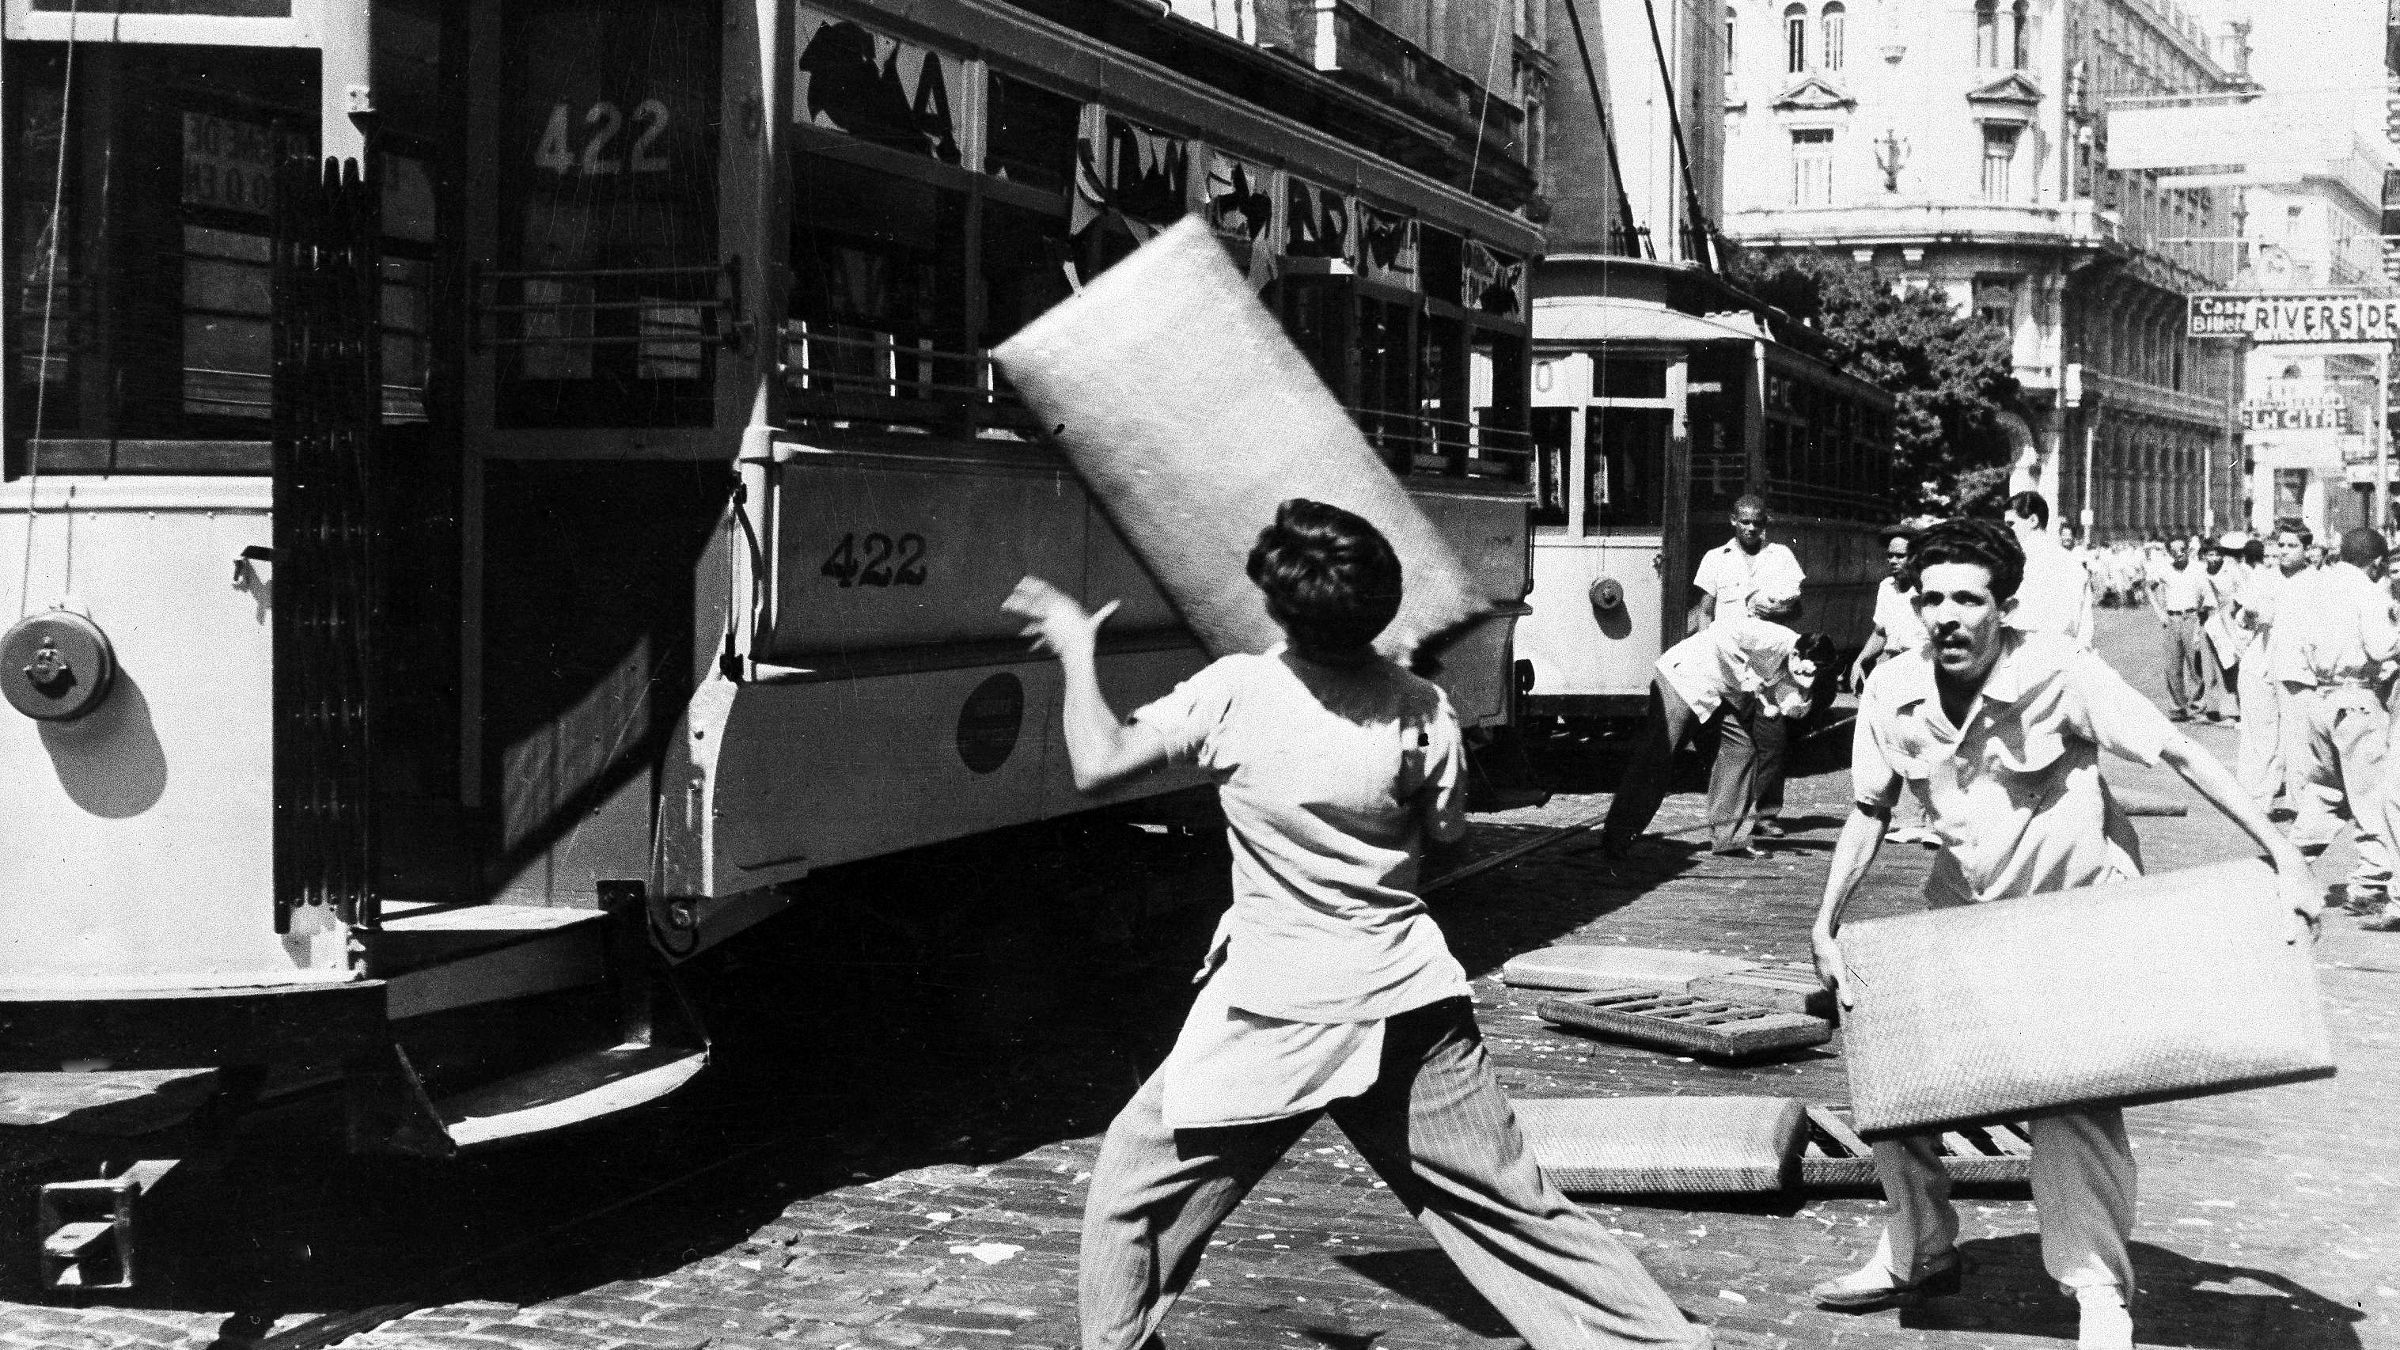 Students throw car seats back into a street car during a demonstration in Havana, Cuba, Feb. 10, 1948. The demonstrators were sympathizing with Guantanamo, Cuba students who are on a hunger strike for a new school building.